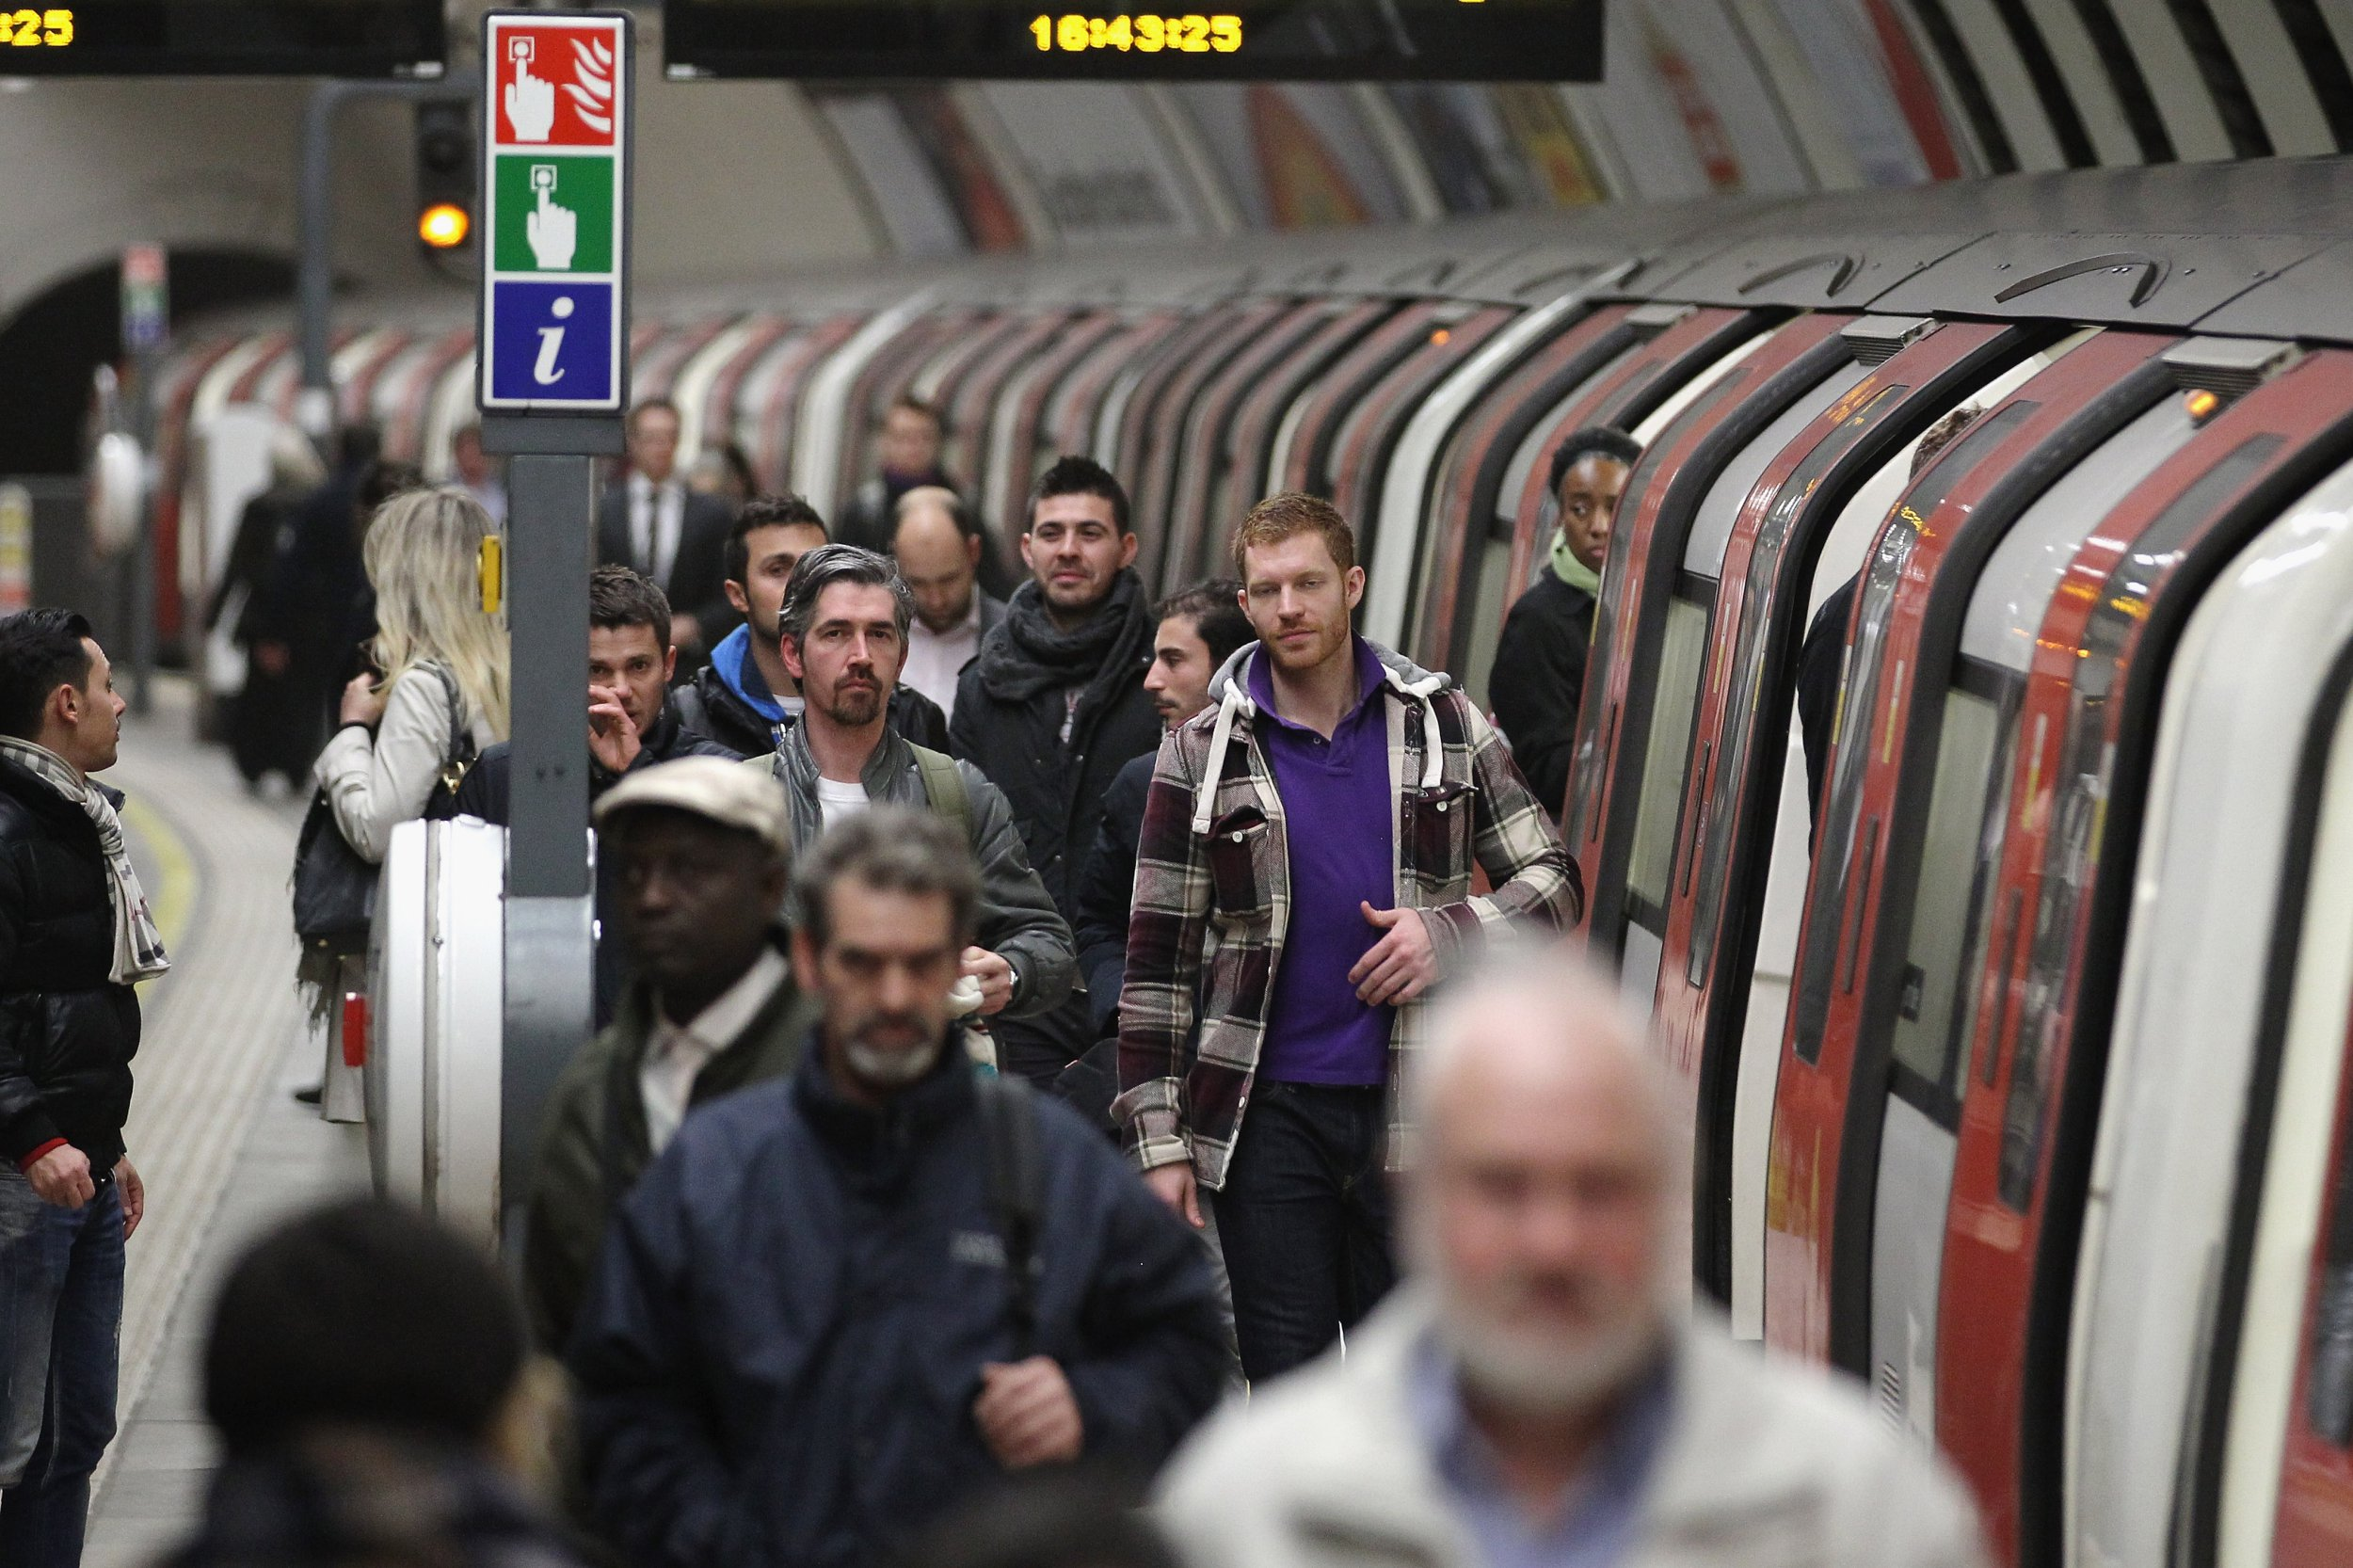 LONDON, ENGLAND - MARCH 05: Commuters make their way along a platform at Clapham North Underground station on March 5, 2012 in London, England. London's underground rail system, commonly called the tube, is the oldest of its kind in the world dating back to 1890. It carries approximately a quarter of a million people around its network every day along its 249 miles of track and 270 stations. The network has undergone several years of upgrade work and refurbishment in preparation for the Olympic Games which take place this summer. During this time the tube is expected to carry millions of visitors to and from the Olympic Parks. (Photo by Dan Kitwood/Getty Images)